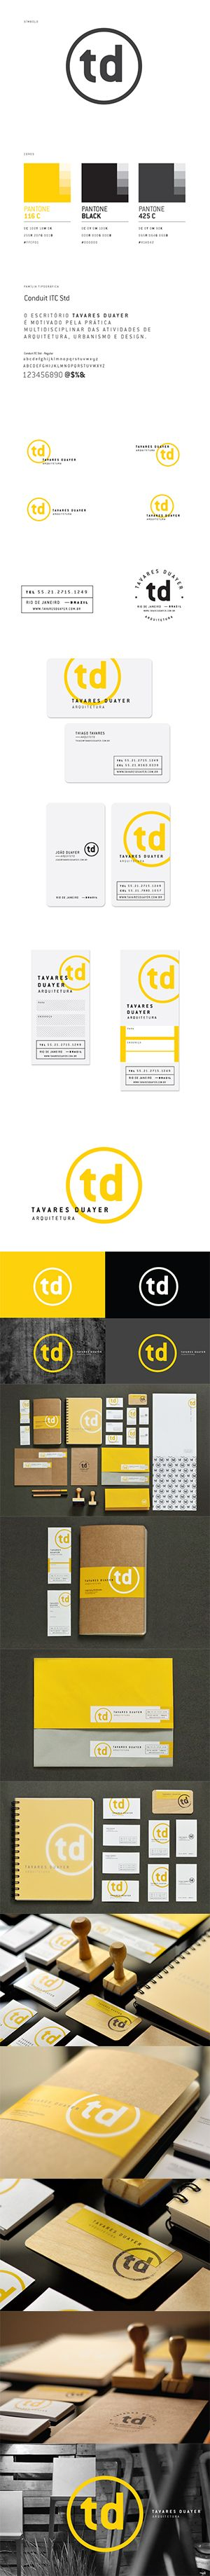 Designer: Tayaras Quater. I pinned this as an example of a ton of identity applications. I like the simple td wordmark too.